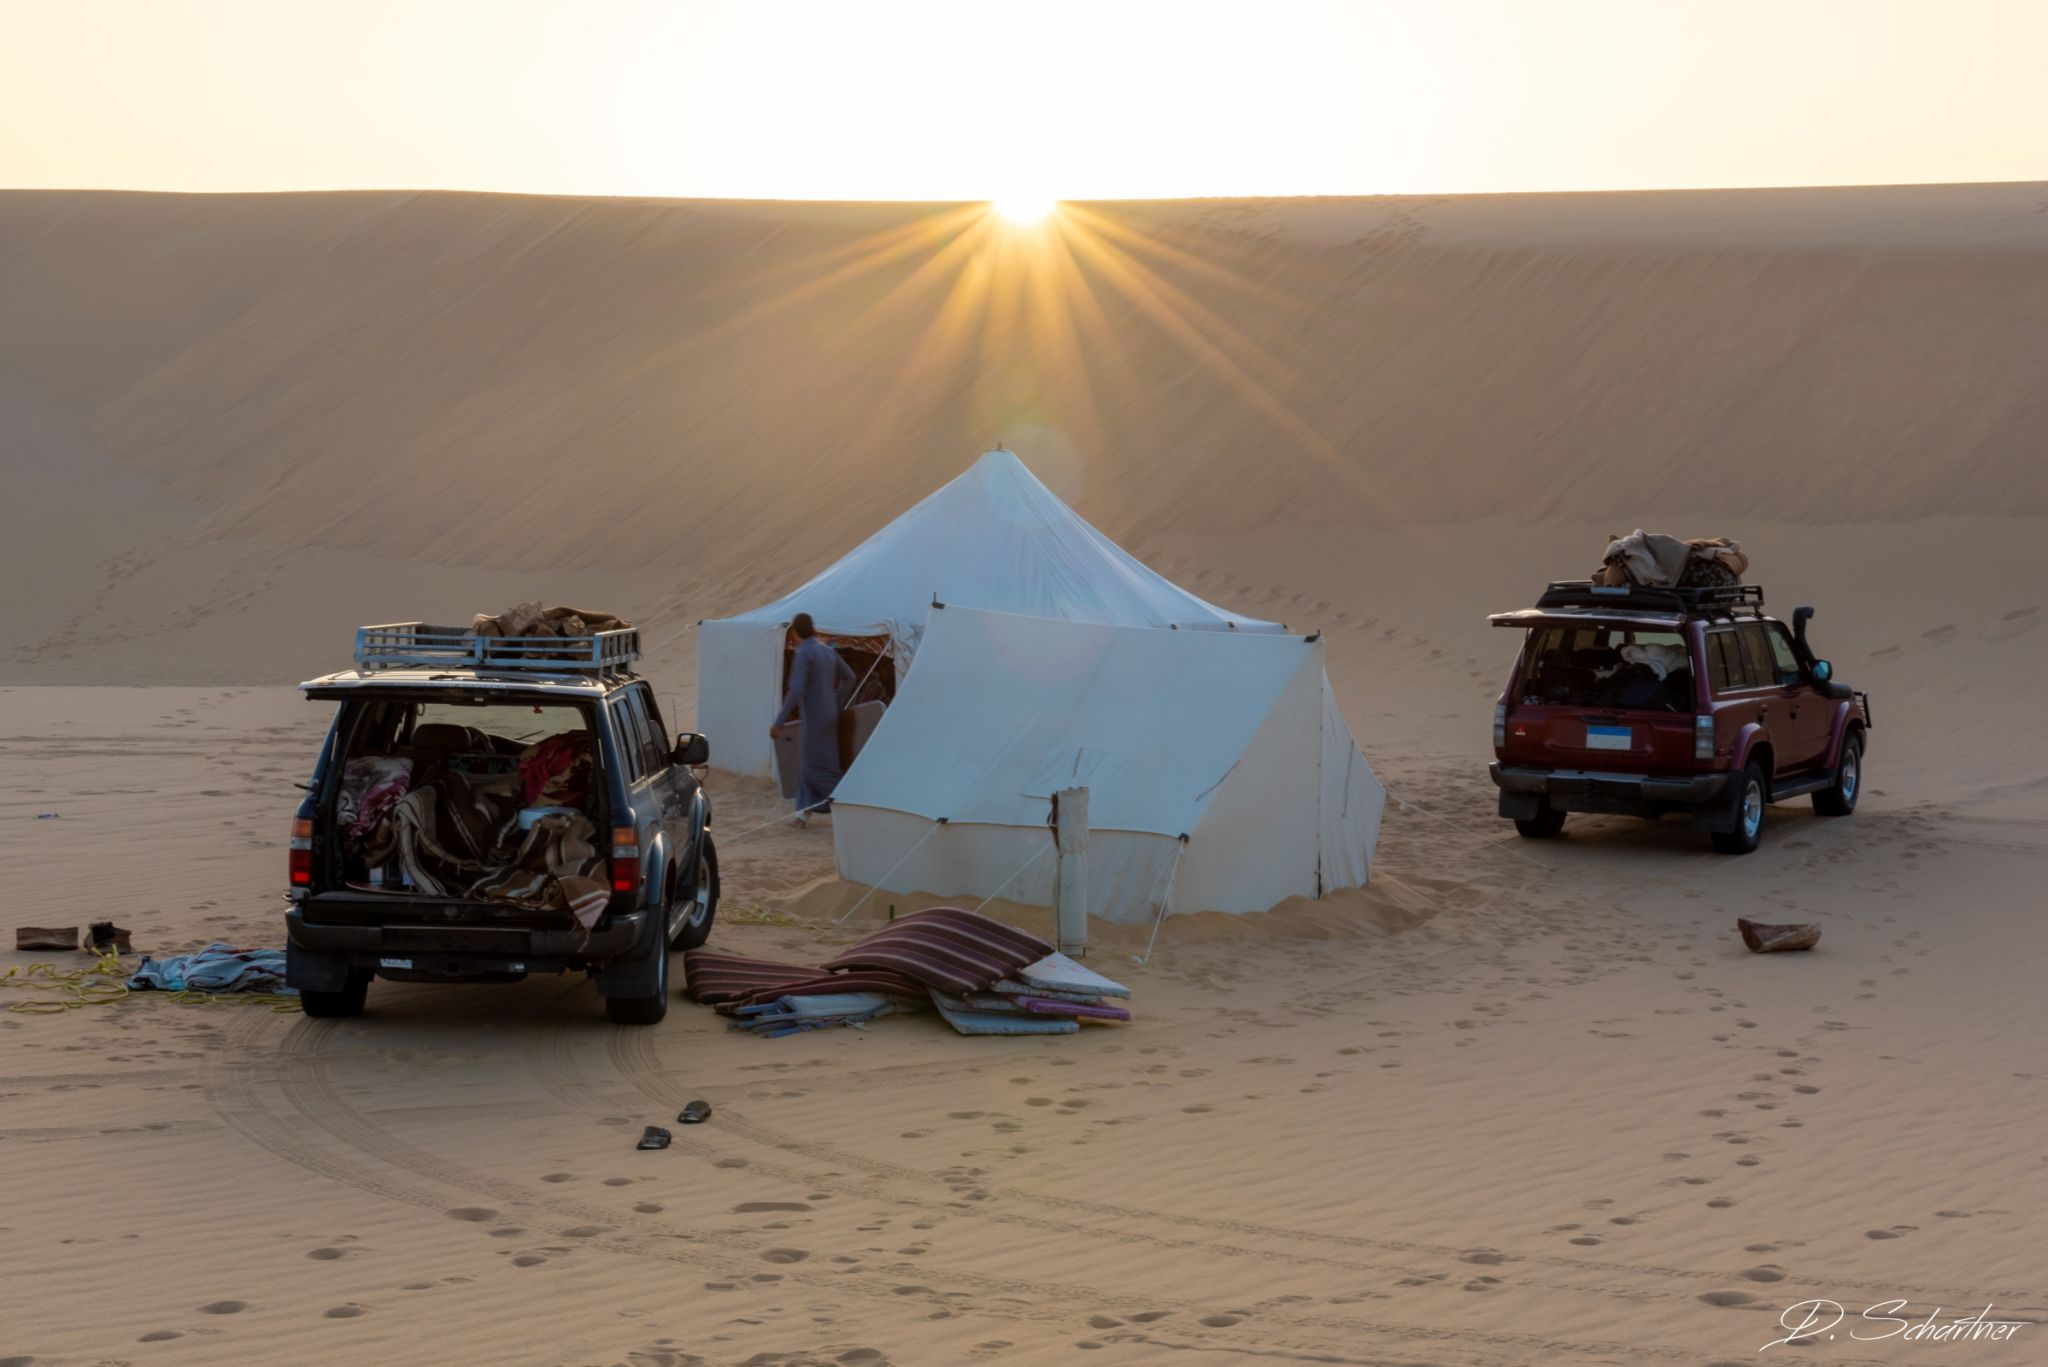 Camping in the Desert, Egypt